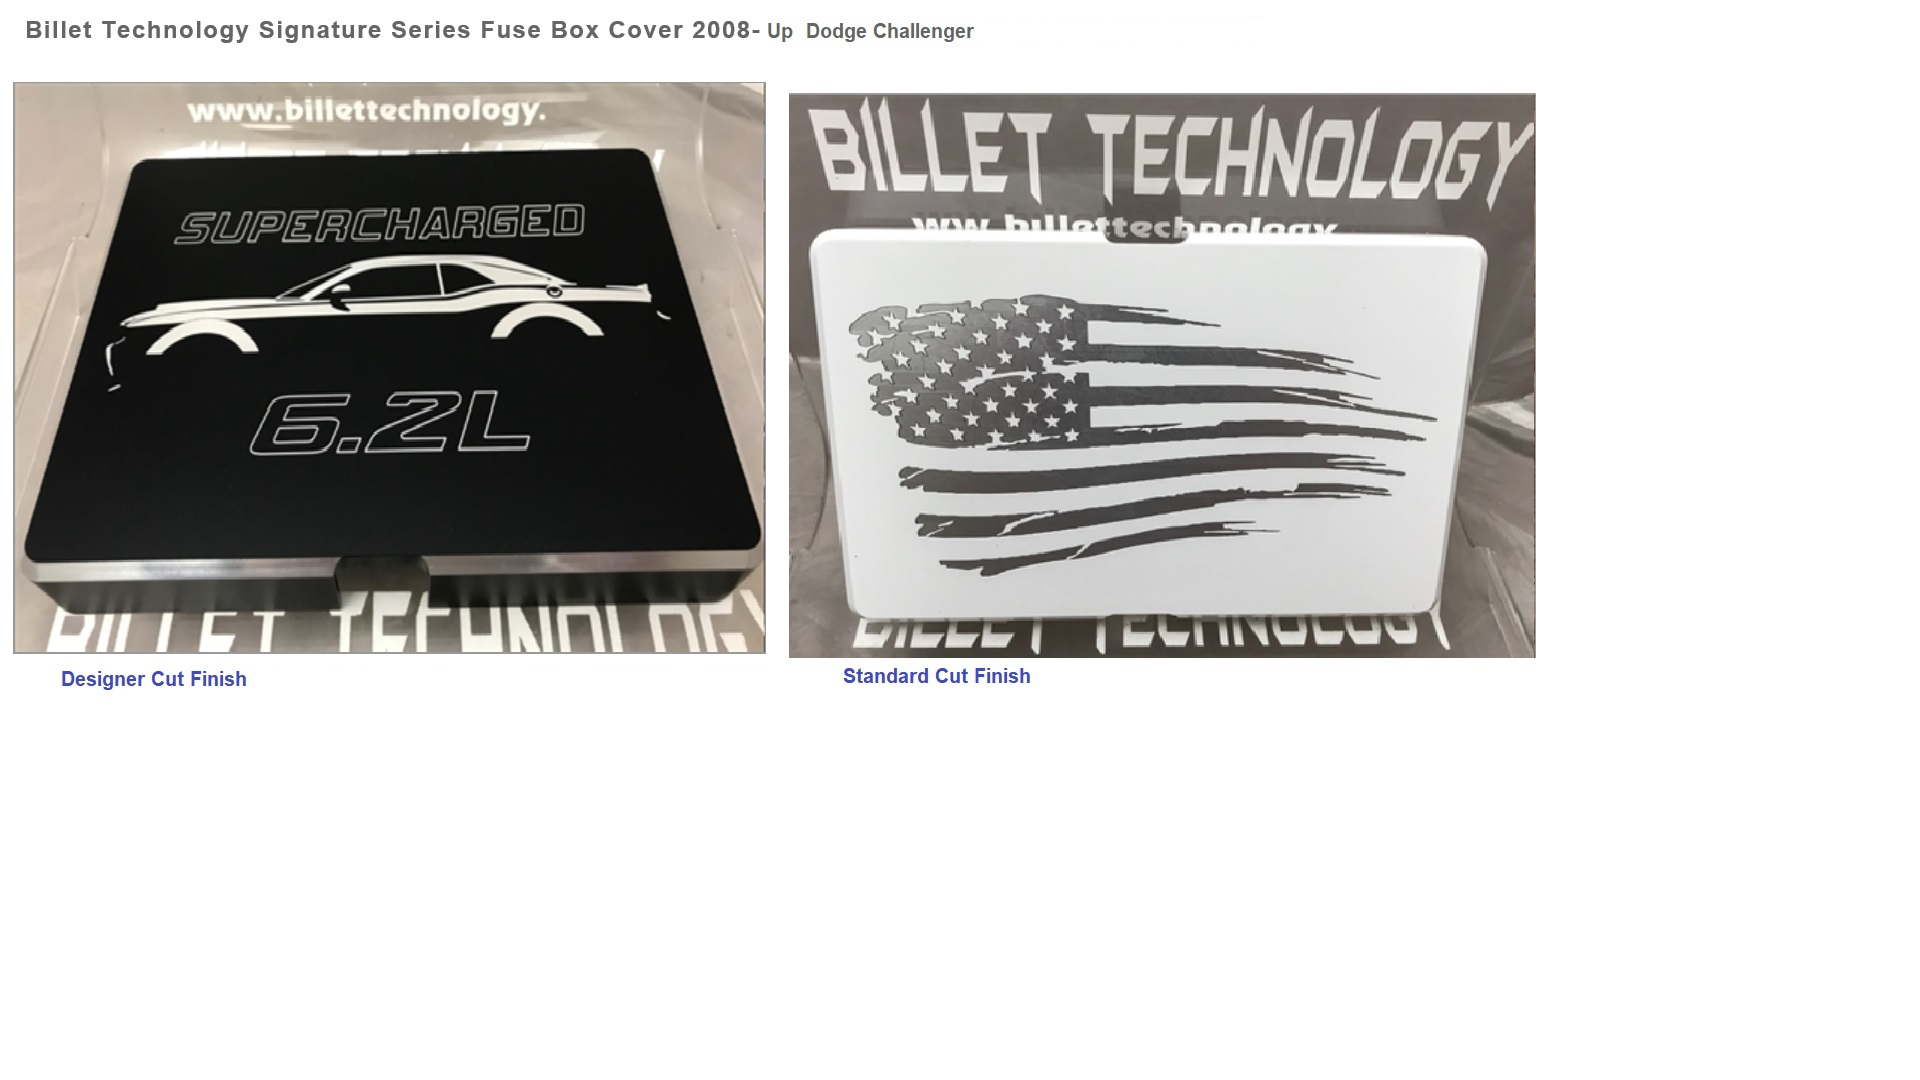 hight resolution of billet technology fuse box cover 08 14 dodge challenger billetbillet technology fuse box cover 08 14